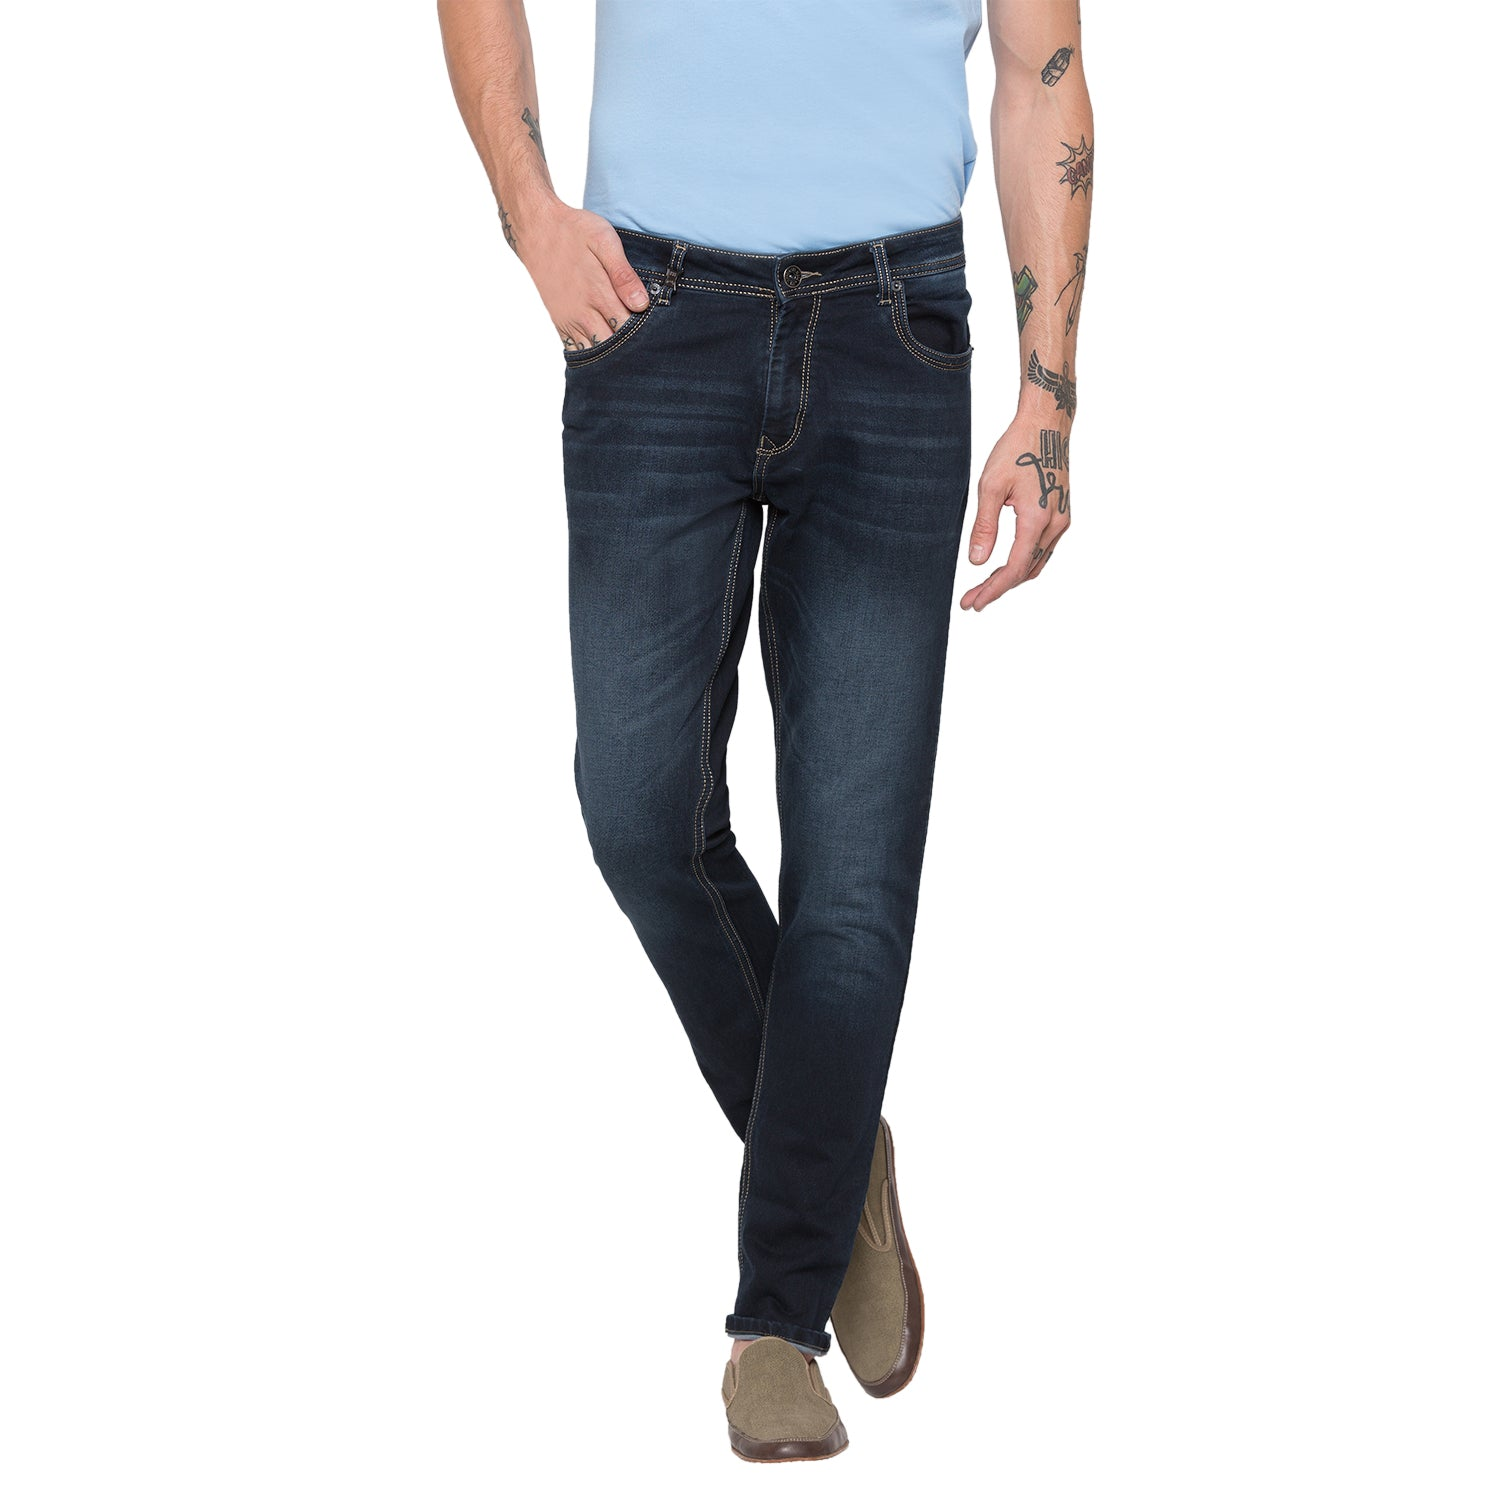 Globus Blue Black Clean Look Jeans-1